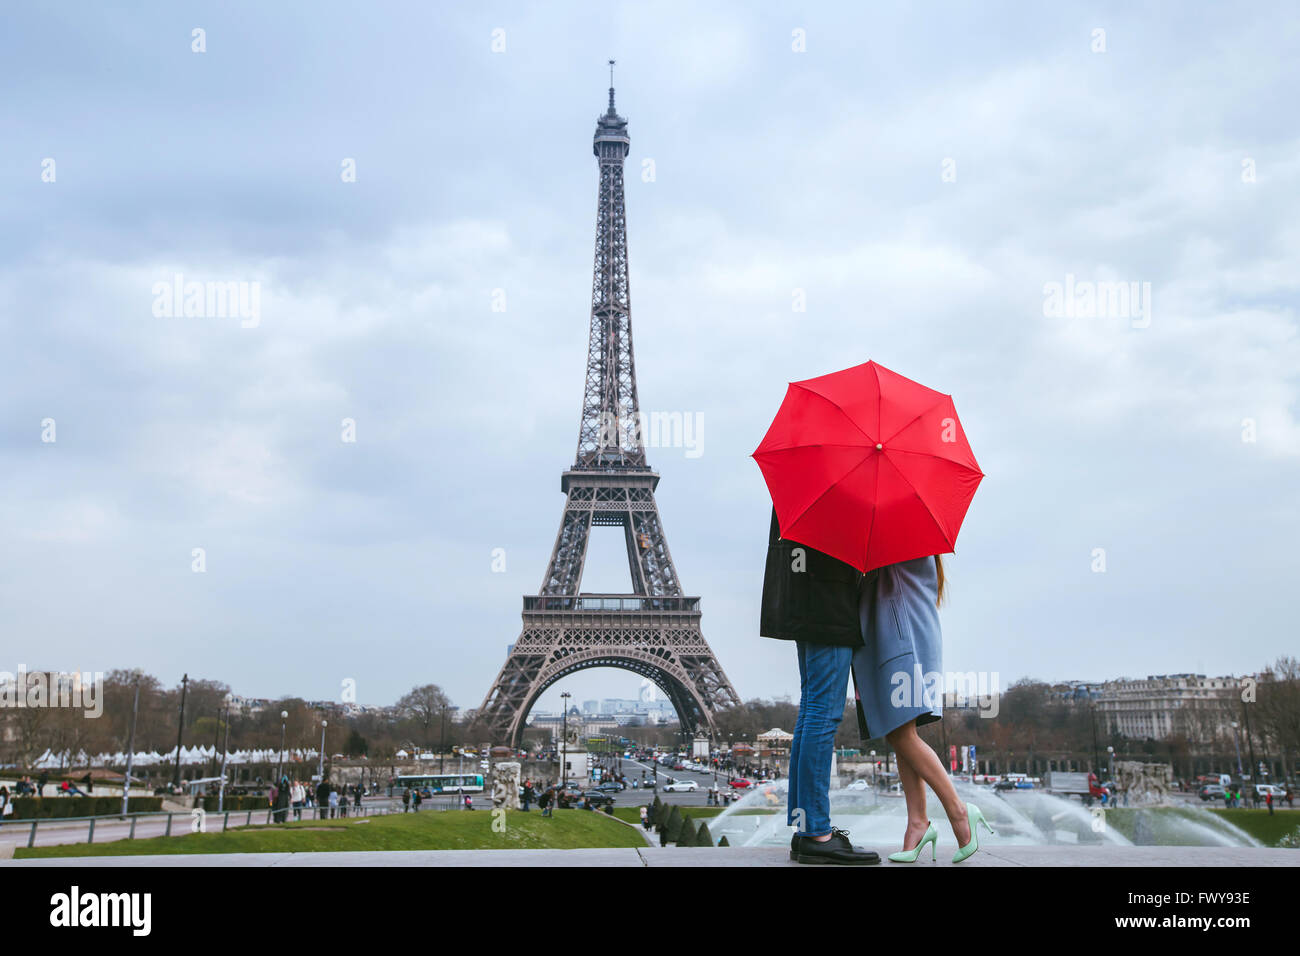 honeymoon in Paris, couple kissing behind red umbrella against Eiffel tower - Stock Image